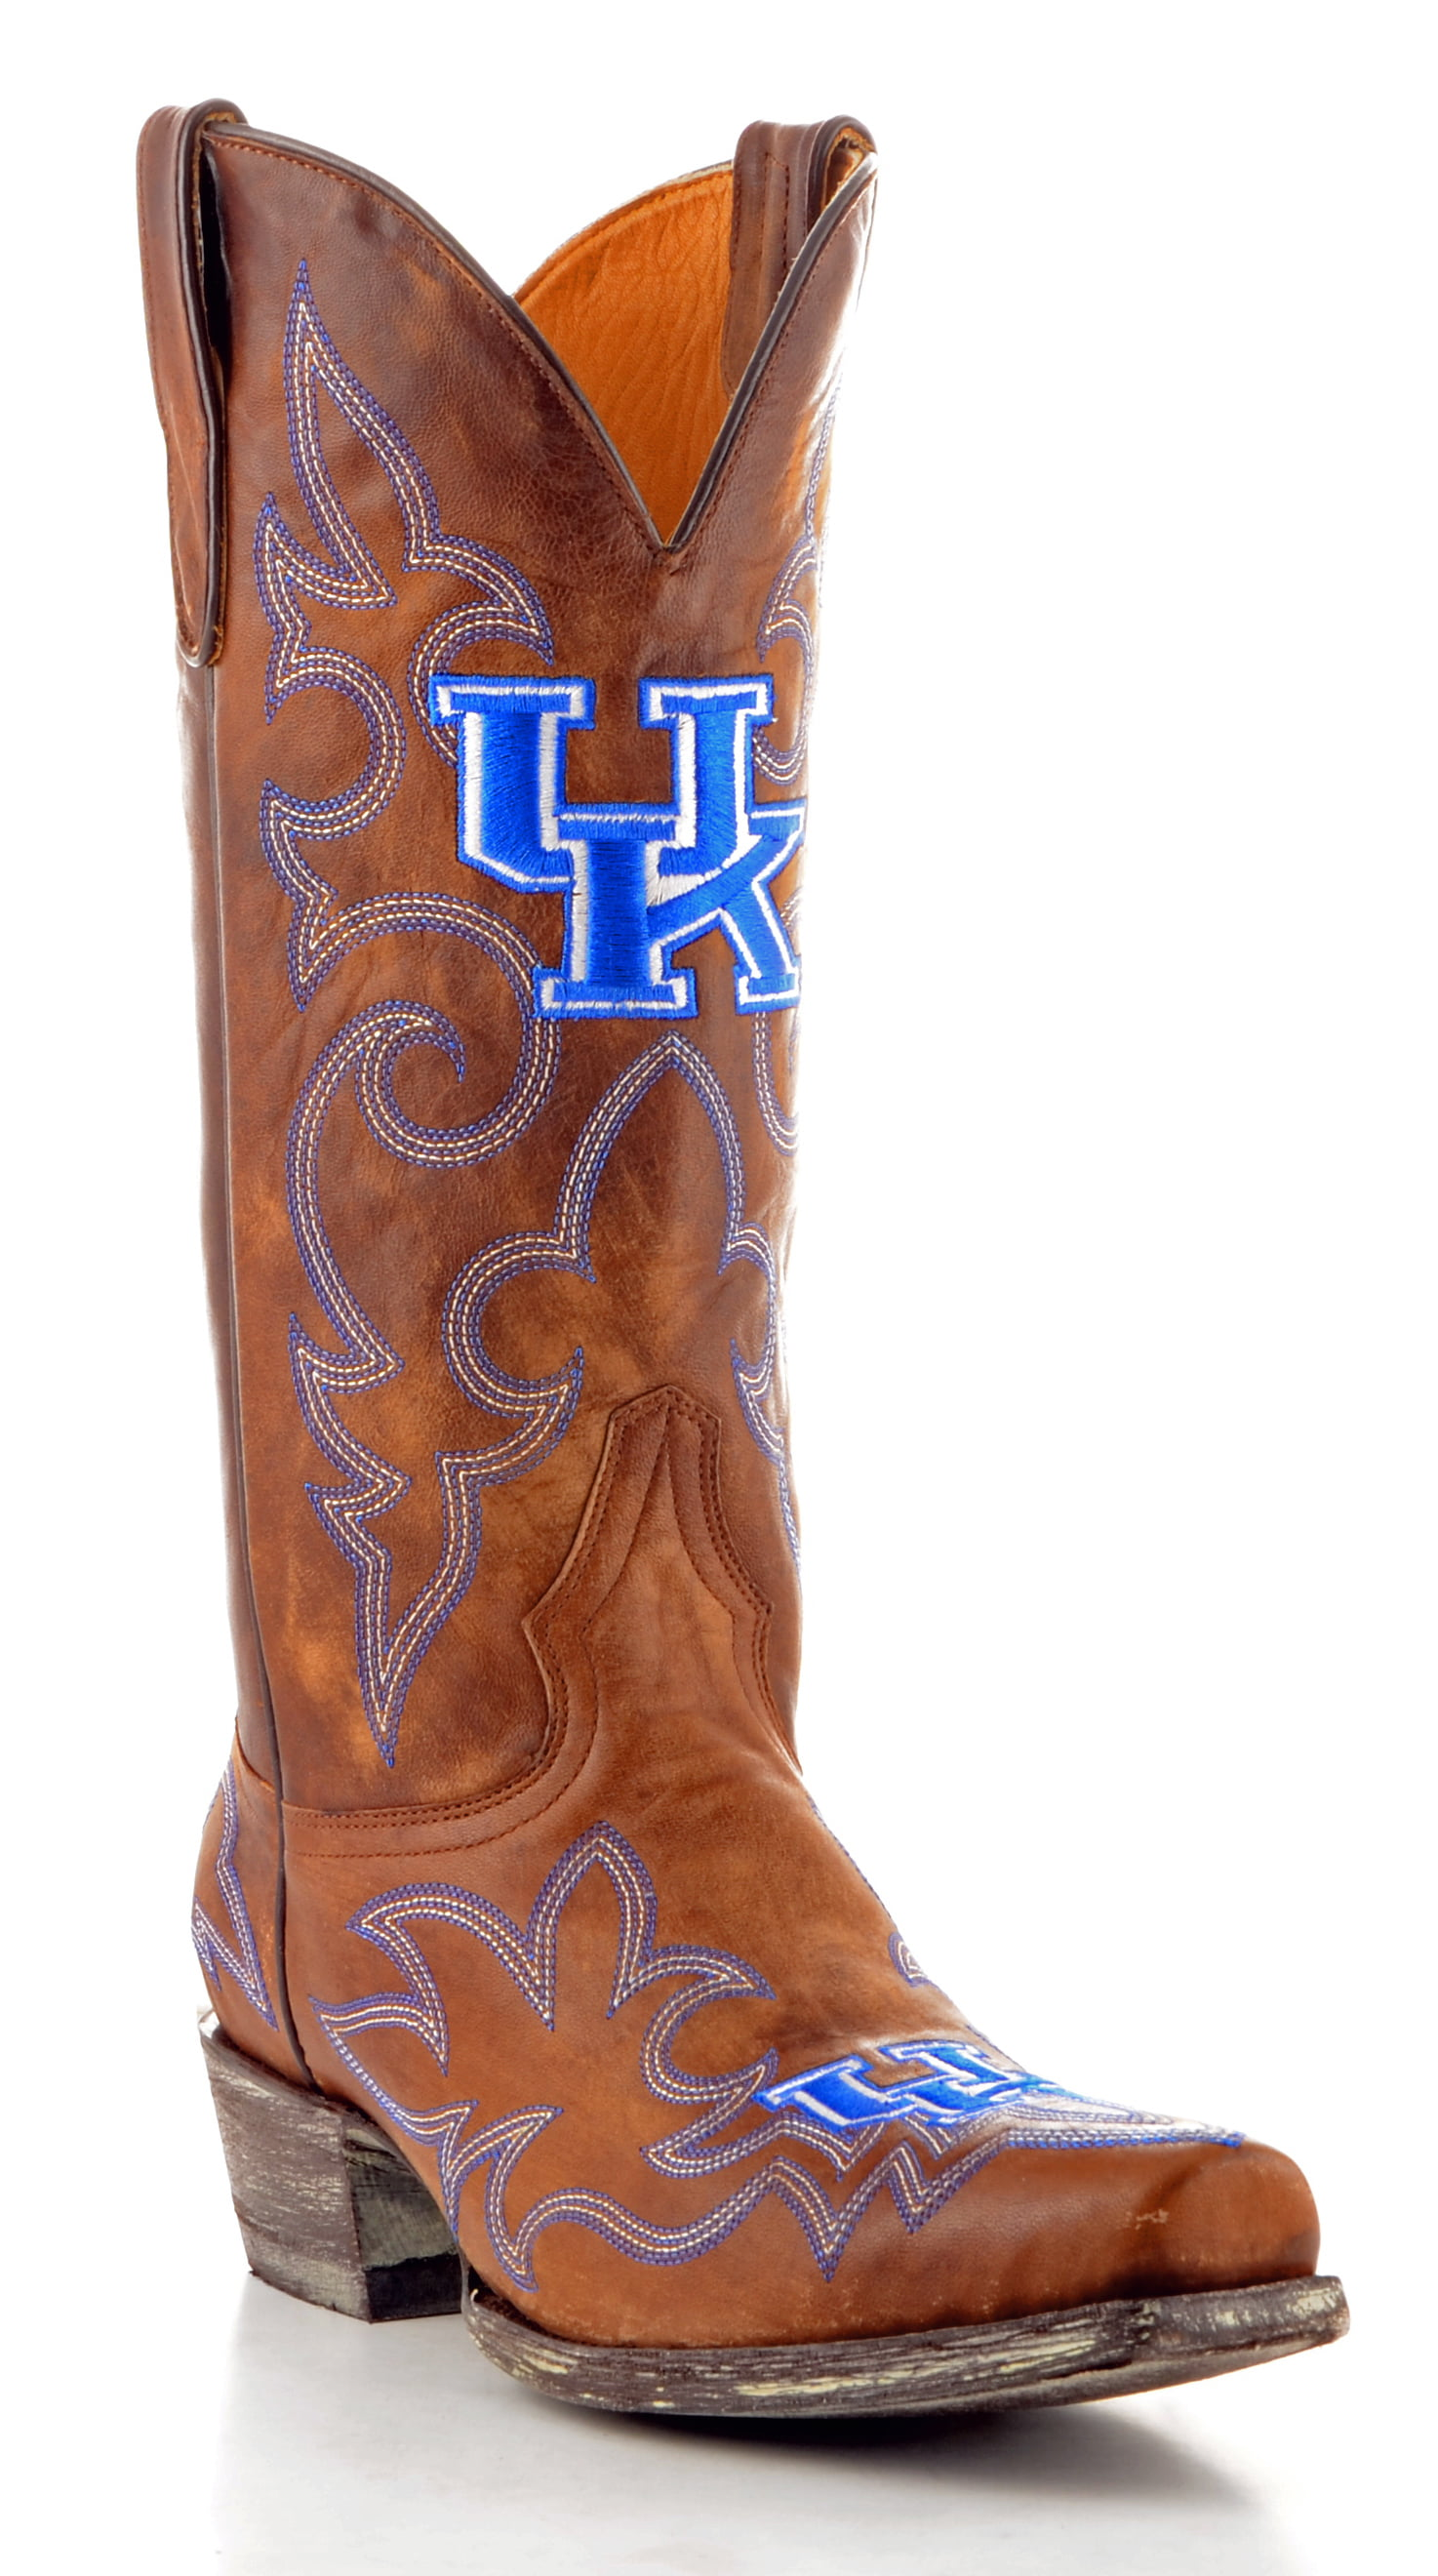 Gameday Boots Mens Leather Kentucky Cowboy Boots by GameDay Boots